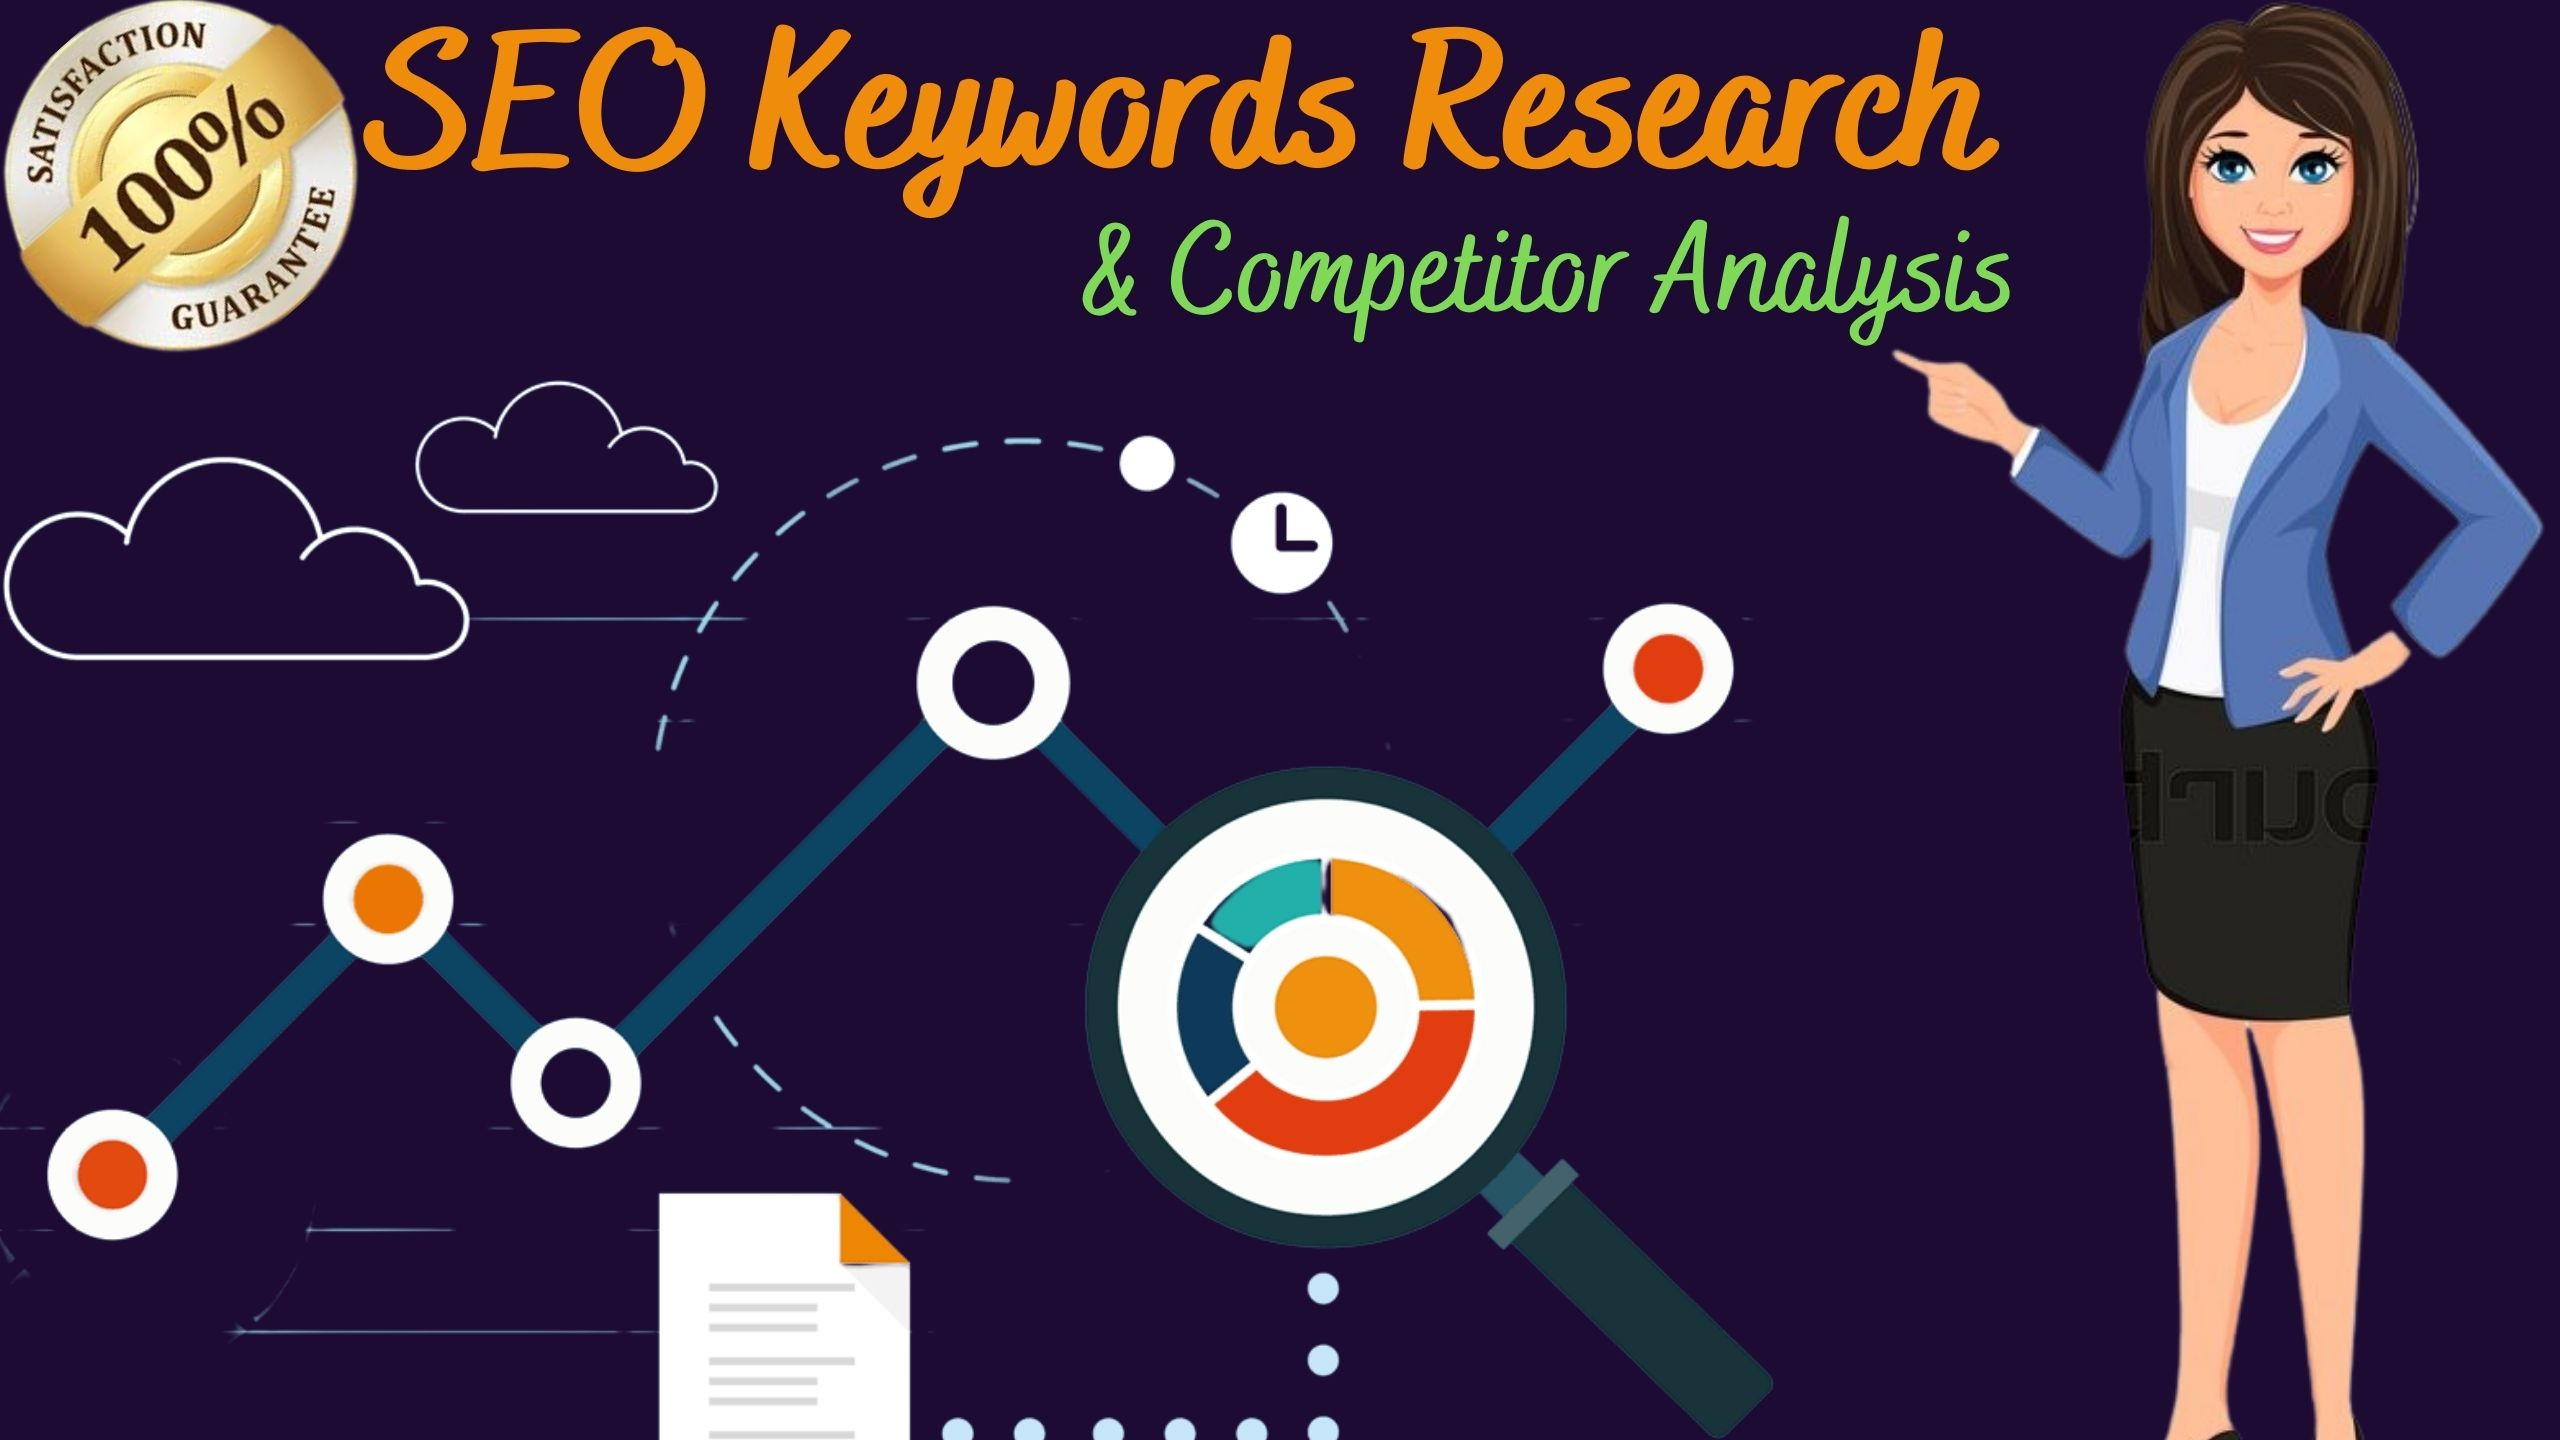 I will do SEO excellent keyword research and competitor analysis